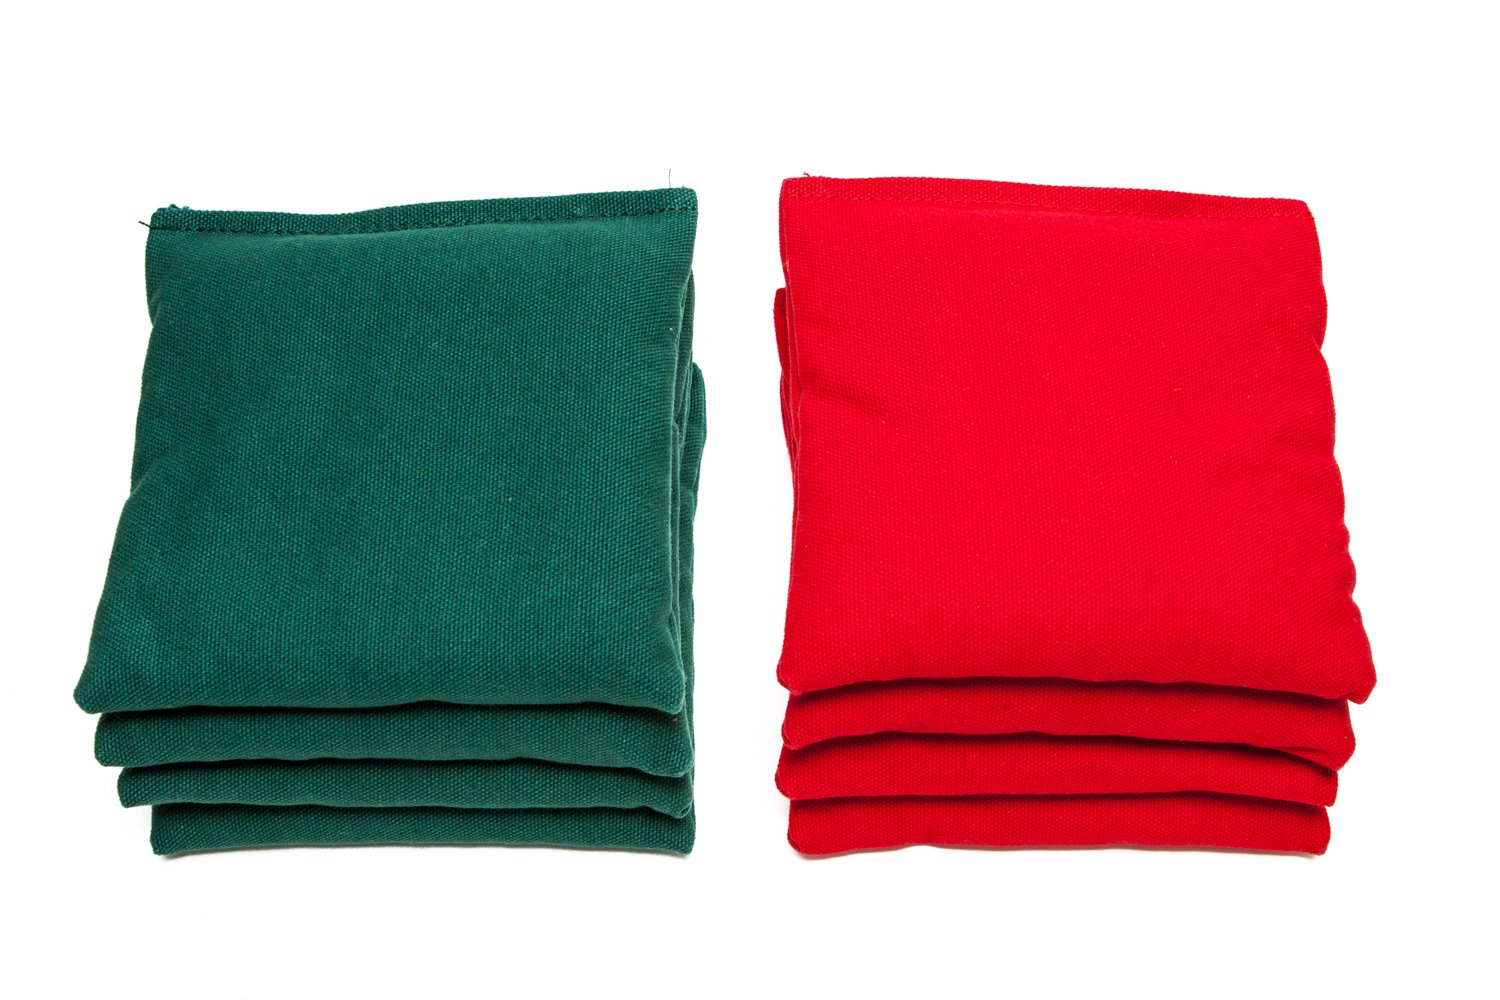 Weather Resistant Cornhole Bags (Set of 8) by SC Cornhole (Red/Hunter Green) by SC Cornhole Games